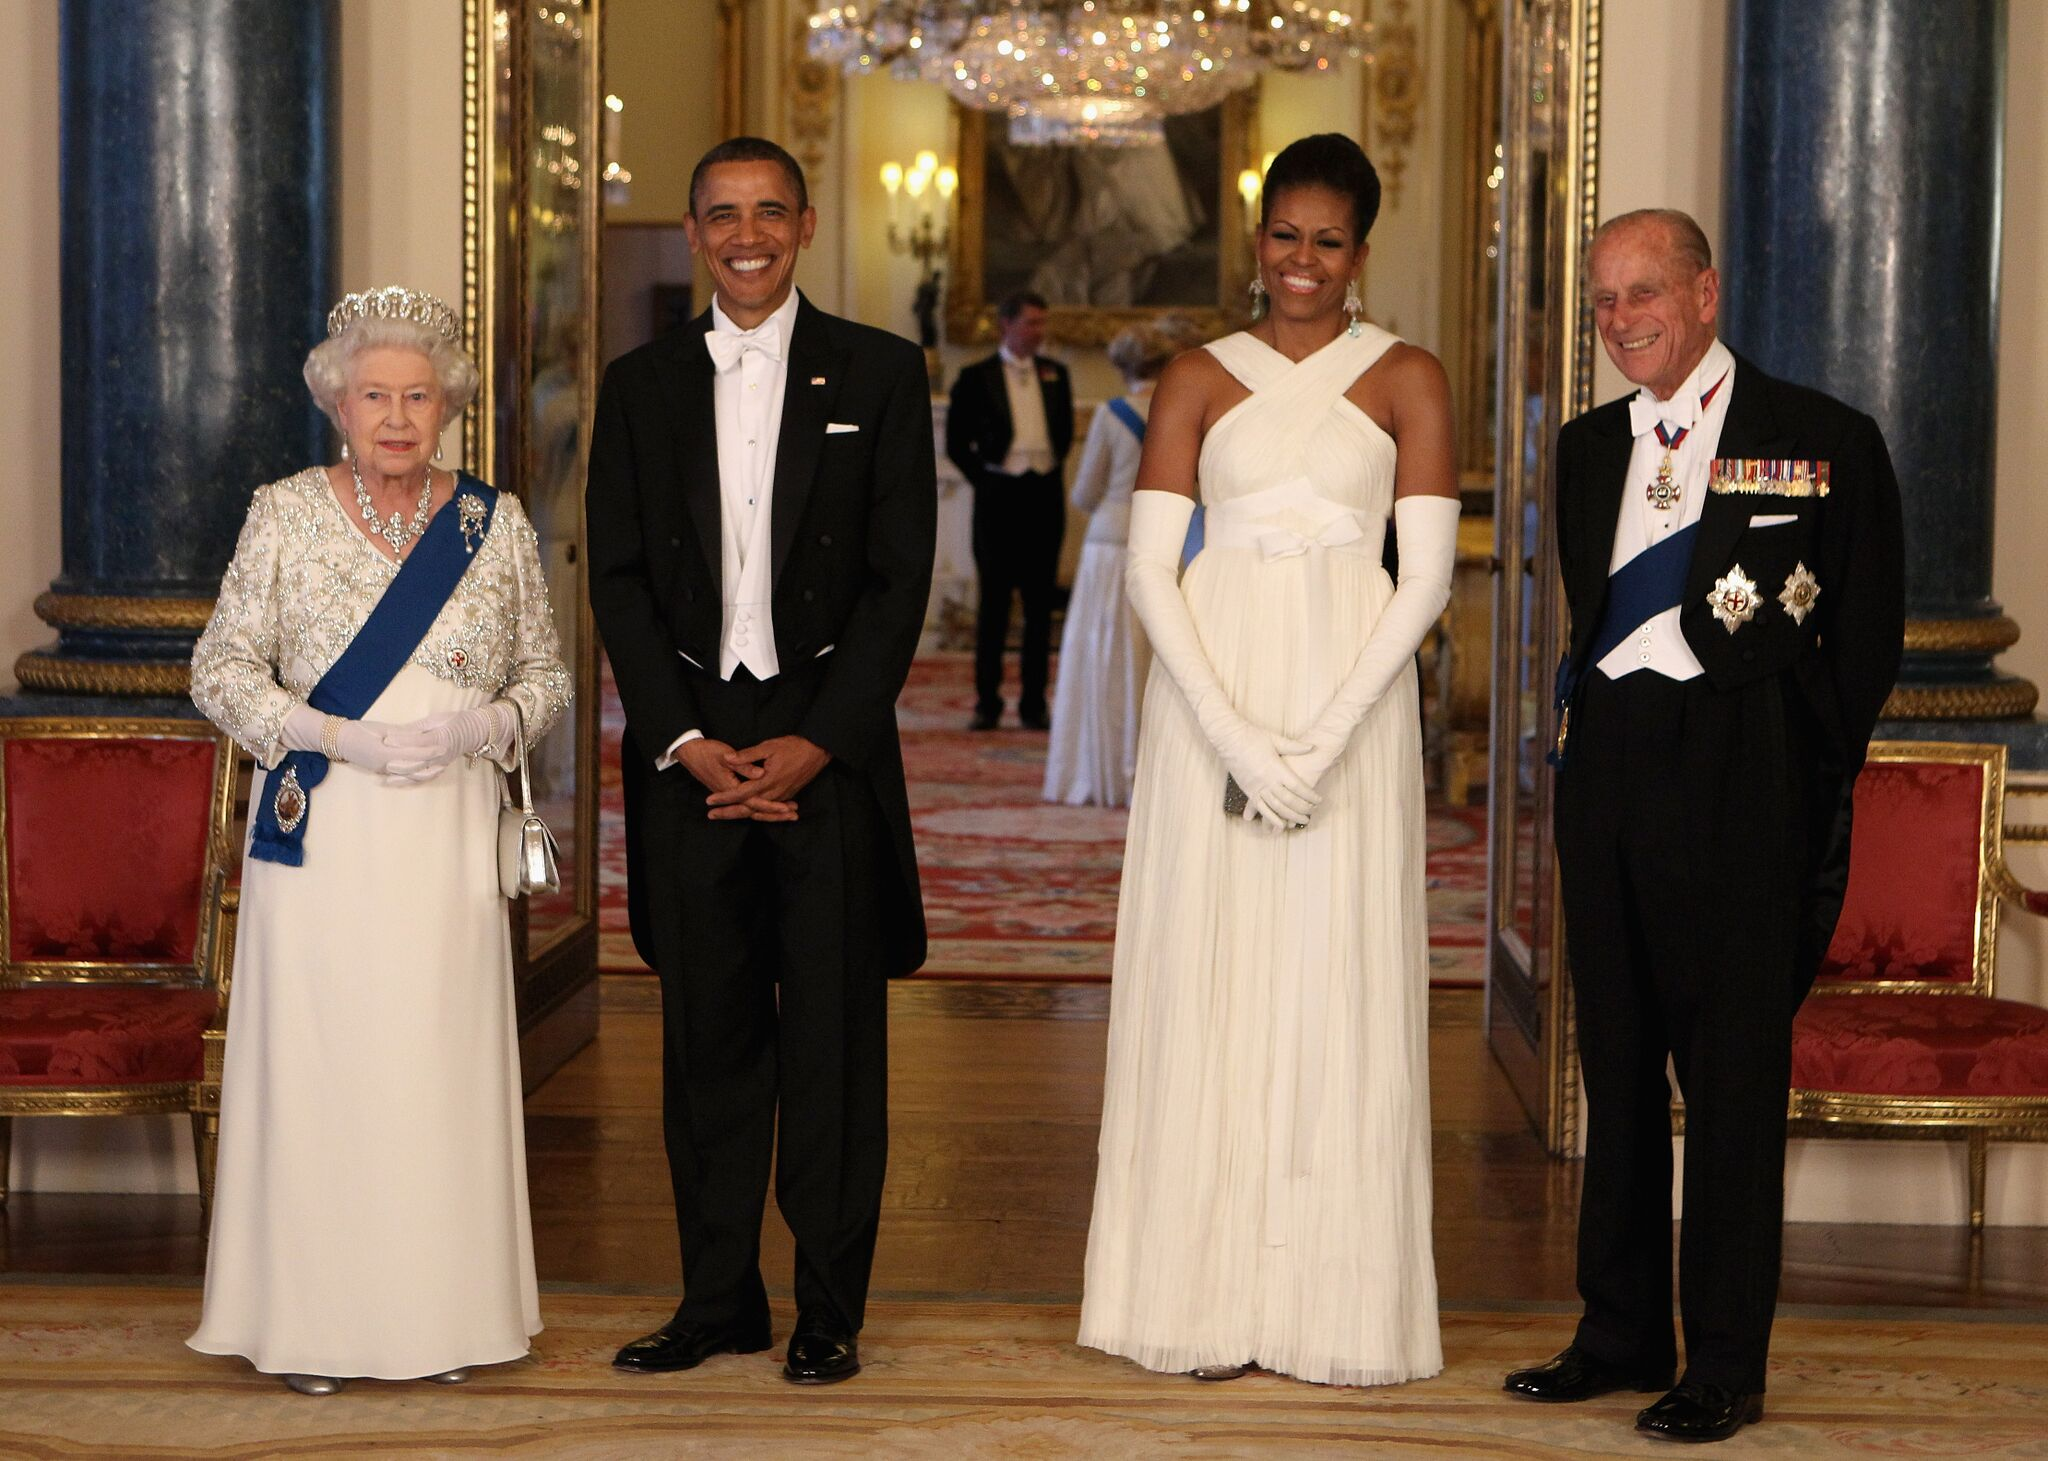 Queen Elizabeth II poses with U.S. President Barack Obama, his wife Michelle Obama and Prince Philip, Duke of Edinburgh in the Music Room of Buckingham Palace  | Getty Images